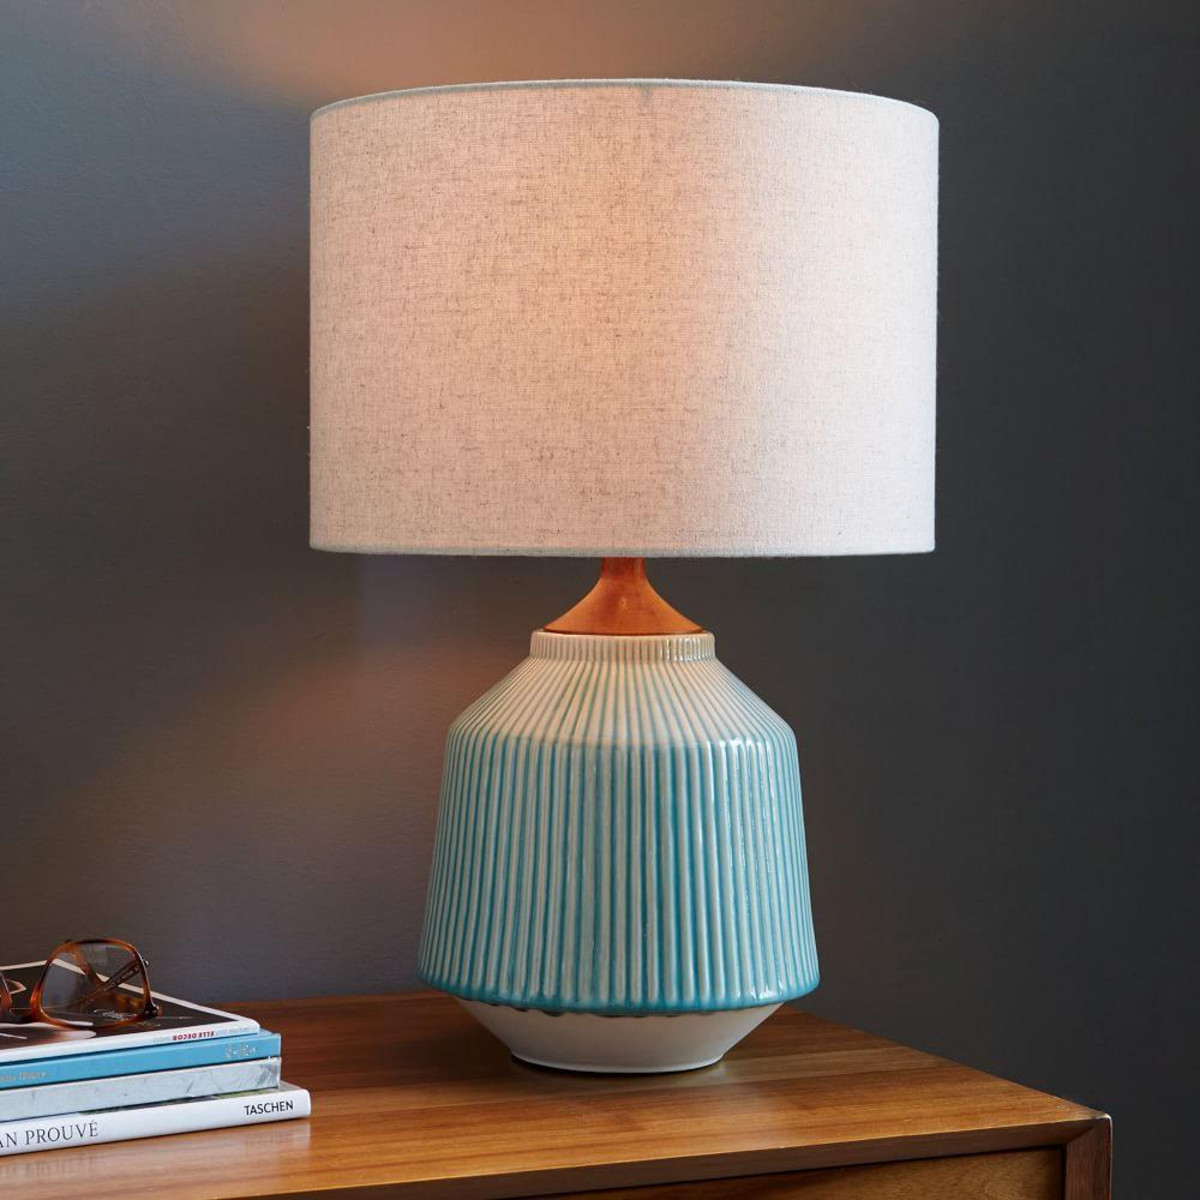 10 beautiful pottery lamps the beat that my heart skipped for Images of table lamps